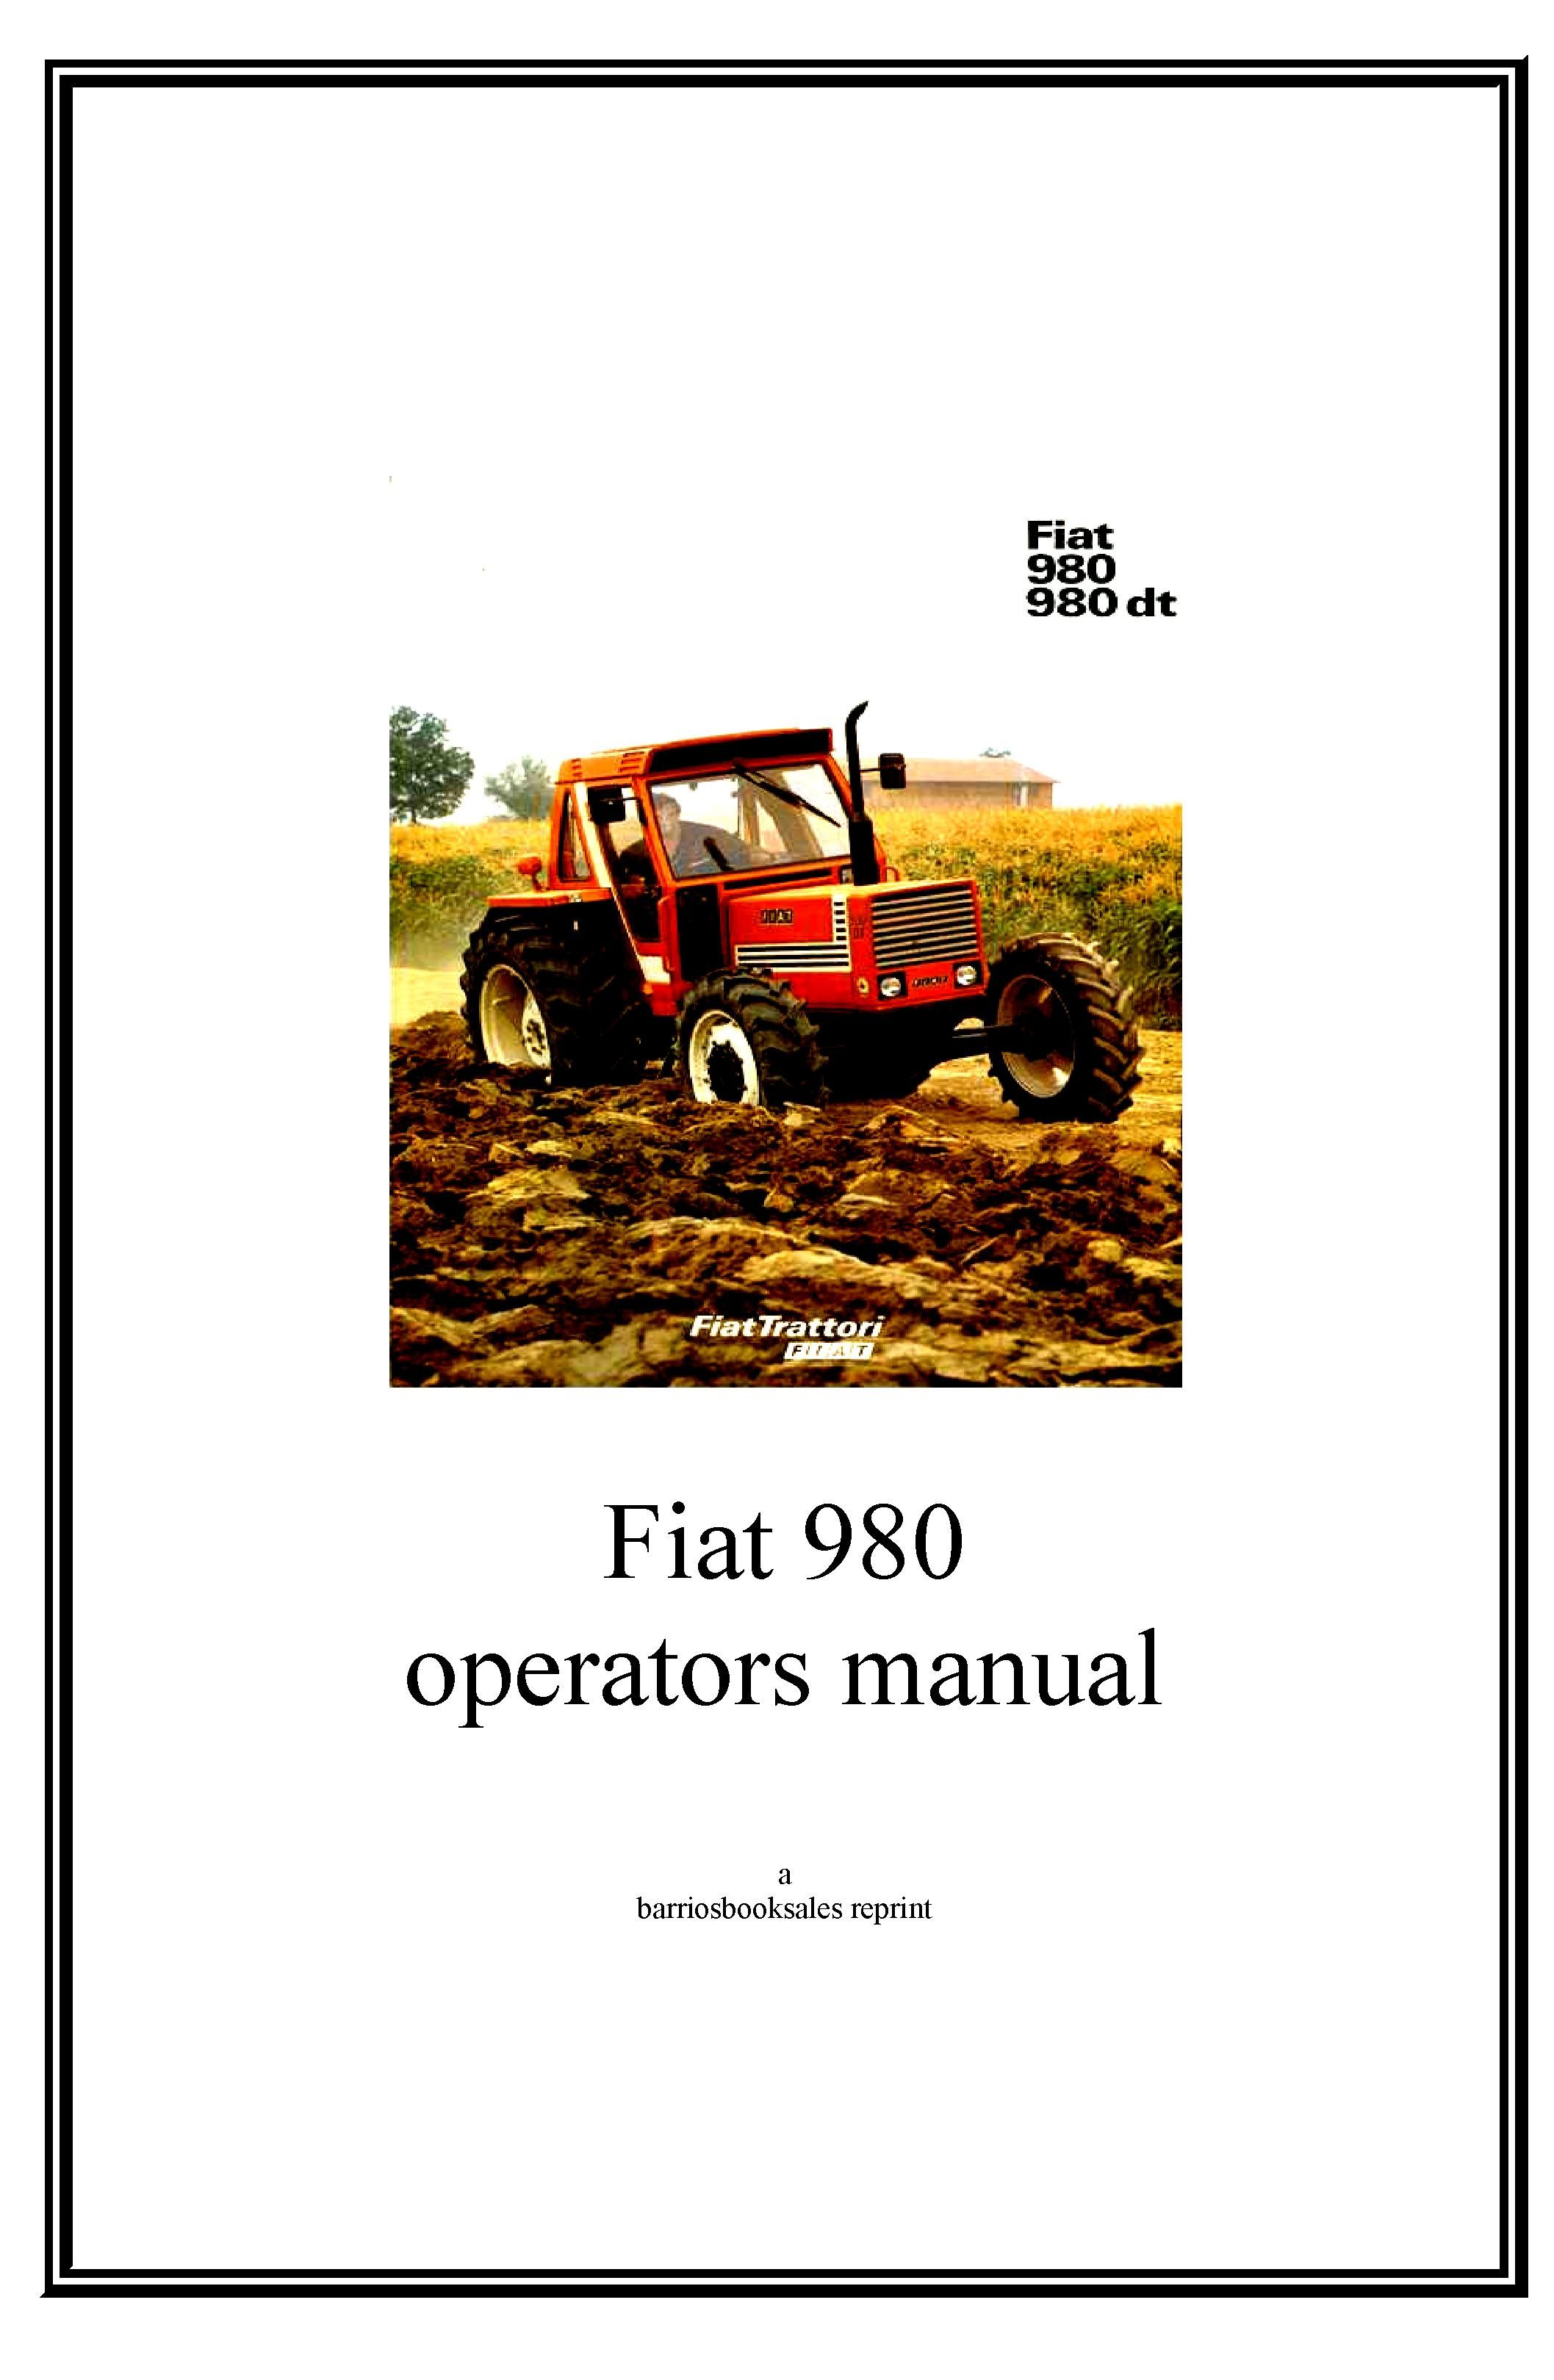 Pin by Tractor manuals dowunder on Fiat tractor manuals to download |  Pinterest | Fiat and Tractor